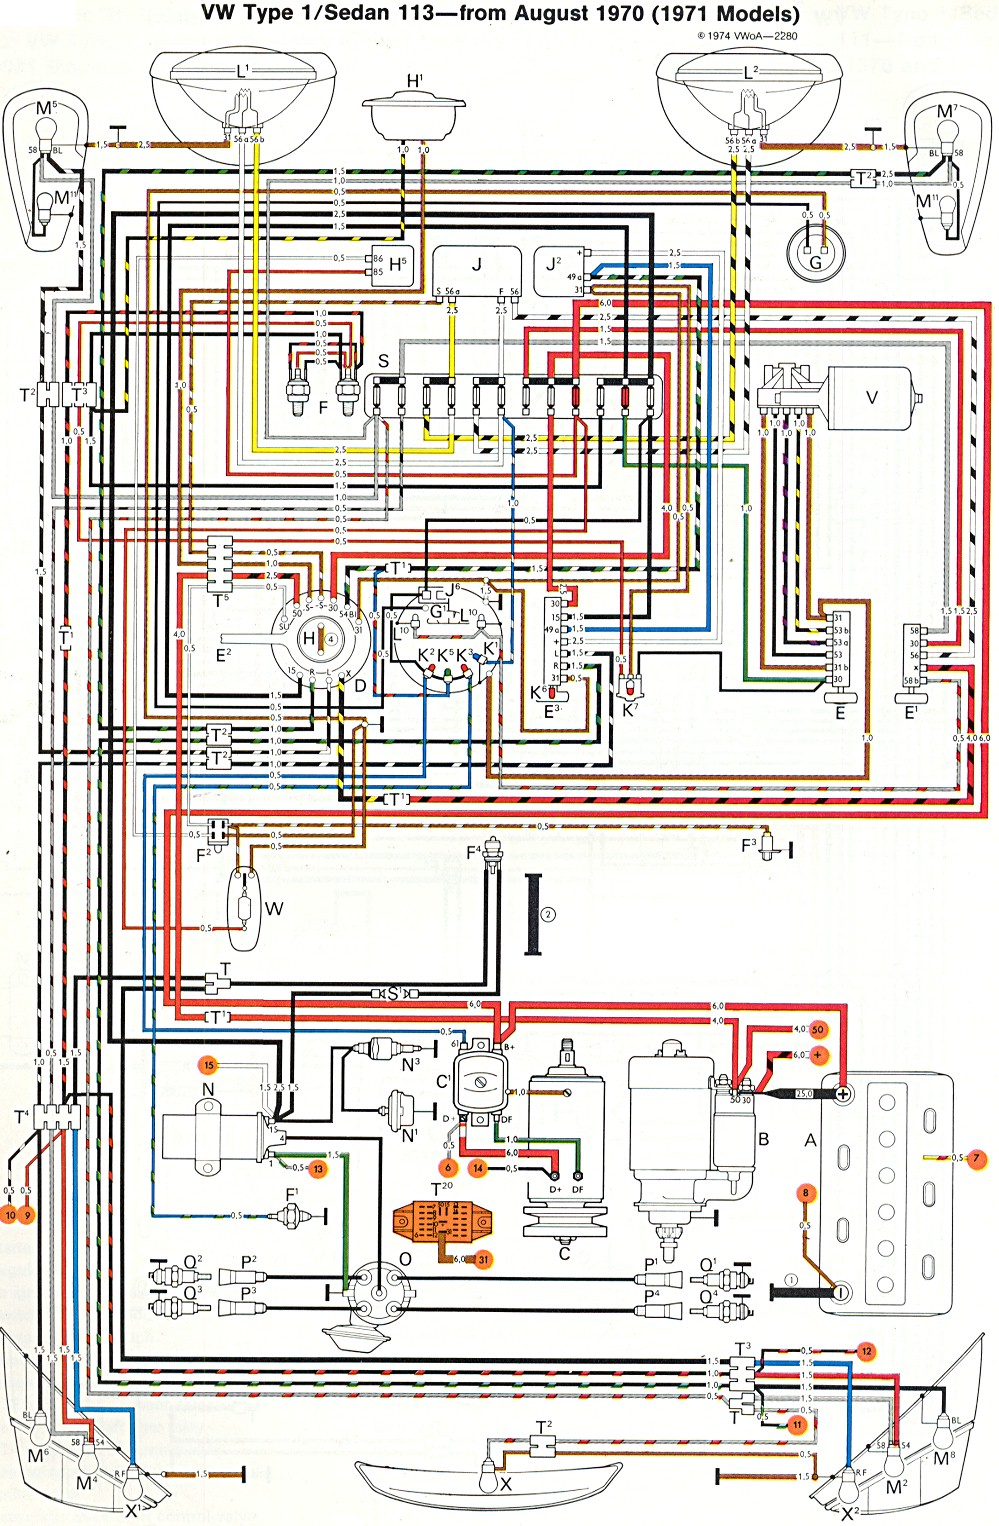 bug_super_71 1971 super beetle wiring diagram thegoldenbug com 1970 vw bug wiring diagram at soozxer.org